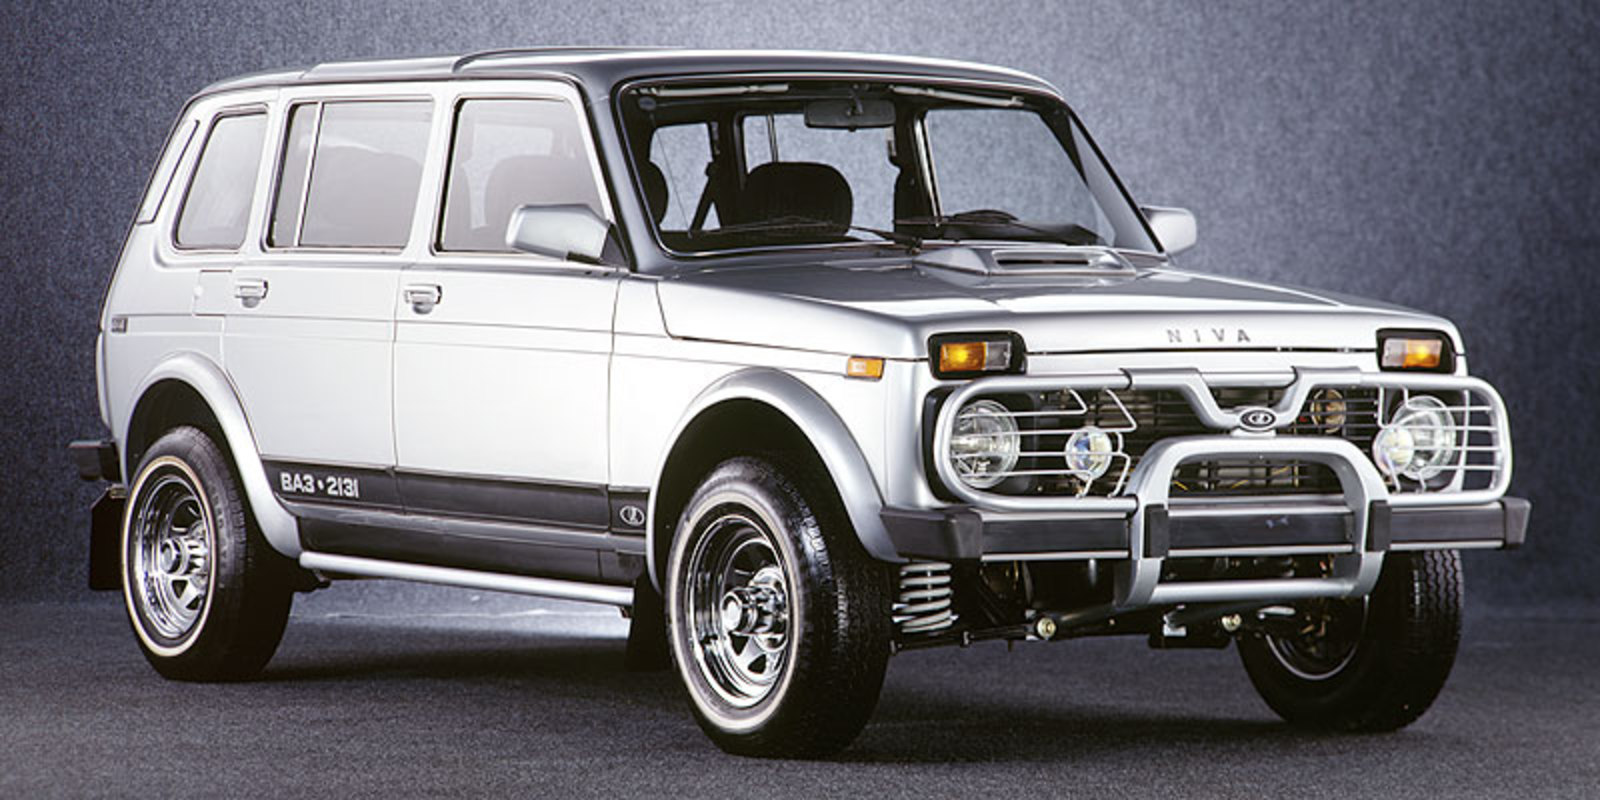 Lada Niva circa 1994. The original 1977 Niva was equipped with a carbureted